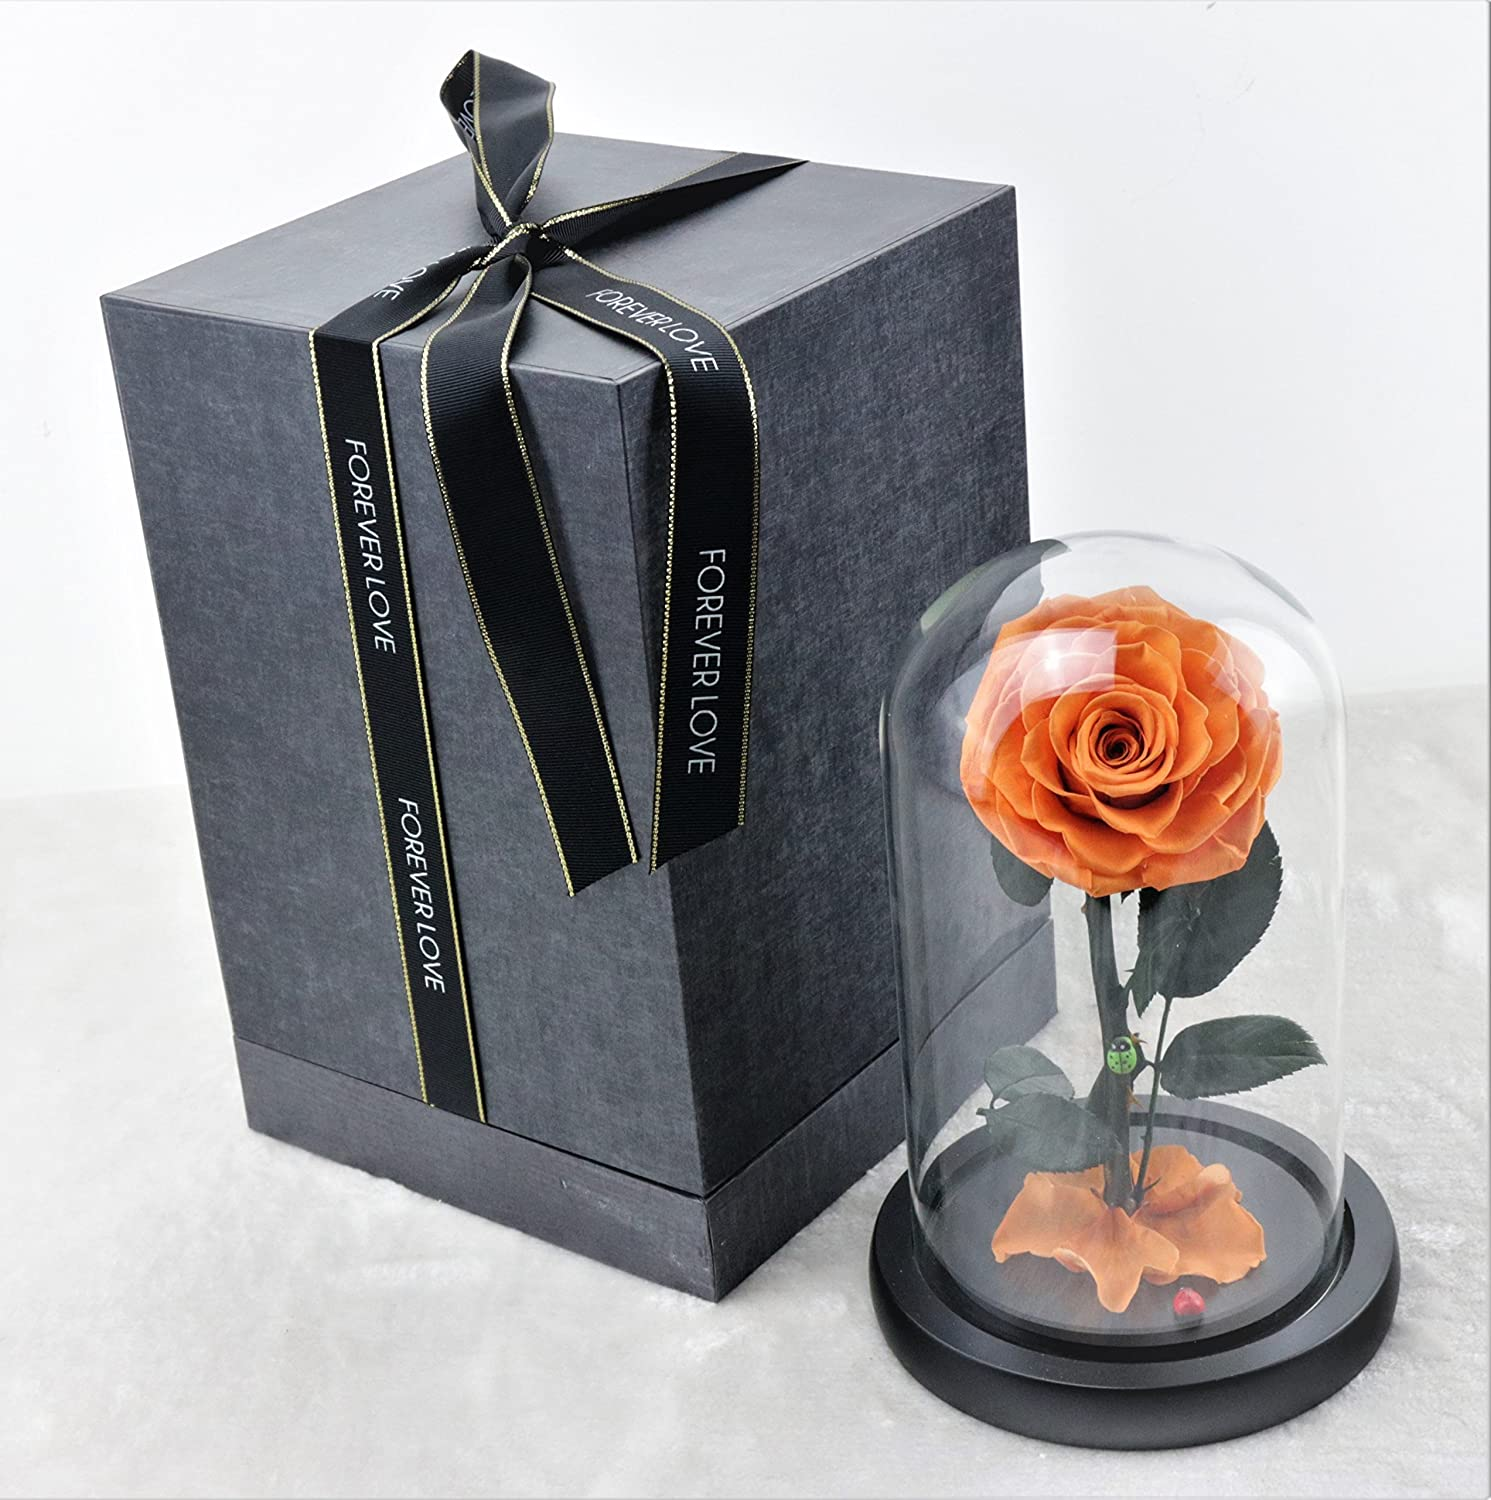 Gift for Valentines Day Anniversary Birthday Mothers Day Small, Red Small art + Preserved Rose Never Withered Roses Flower in Glass Dome Gift for Valentine/'s Day Anniversary Birthday Mother/'s Day